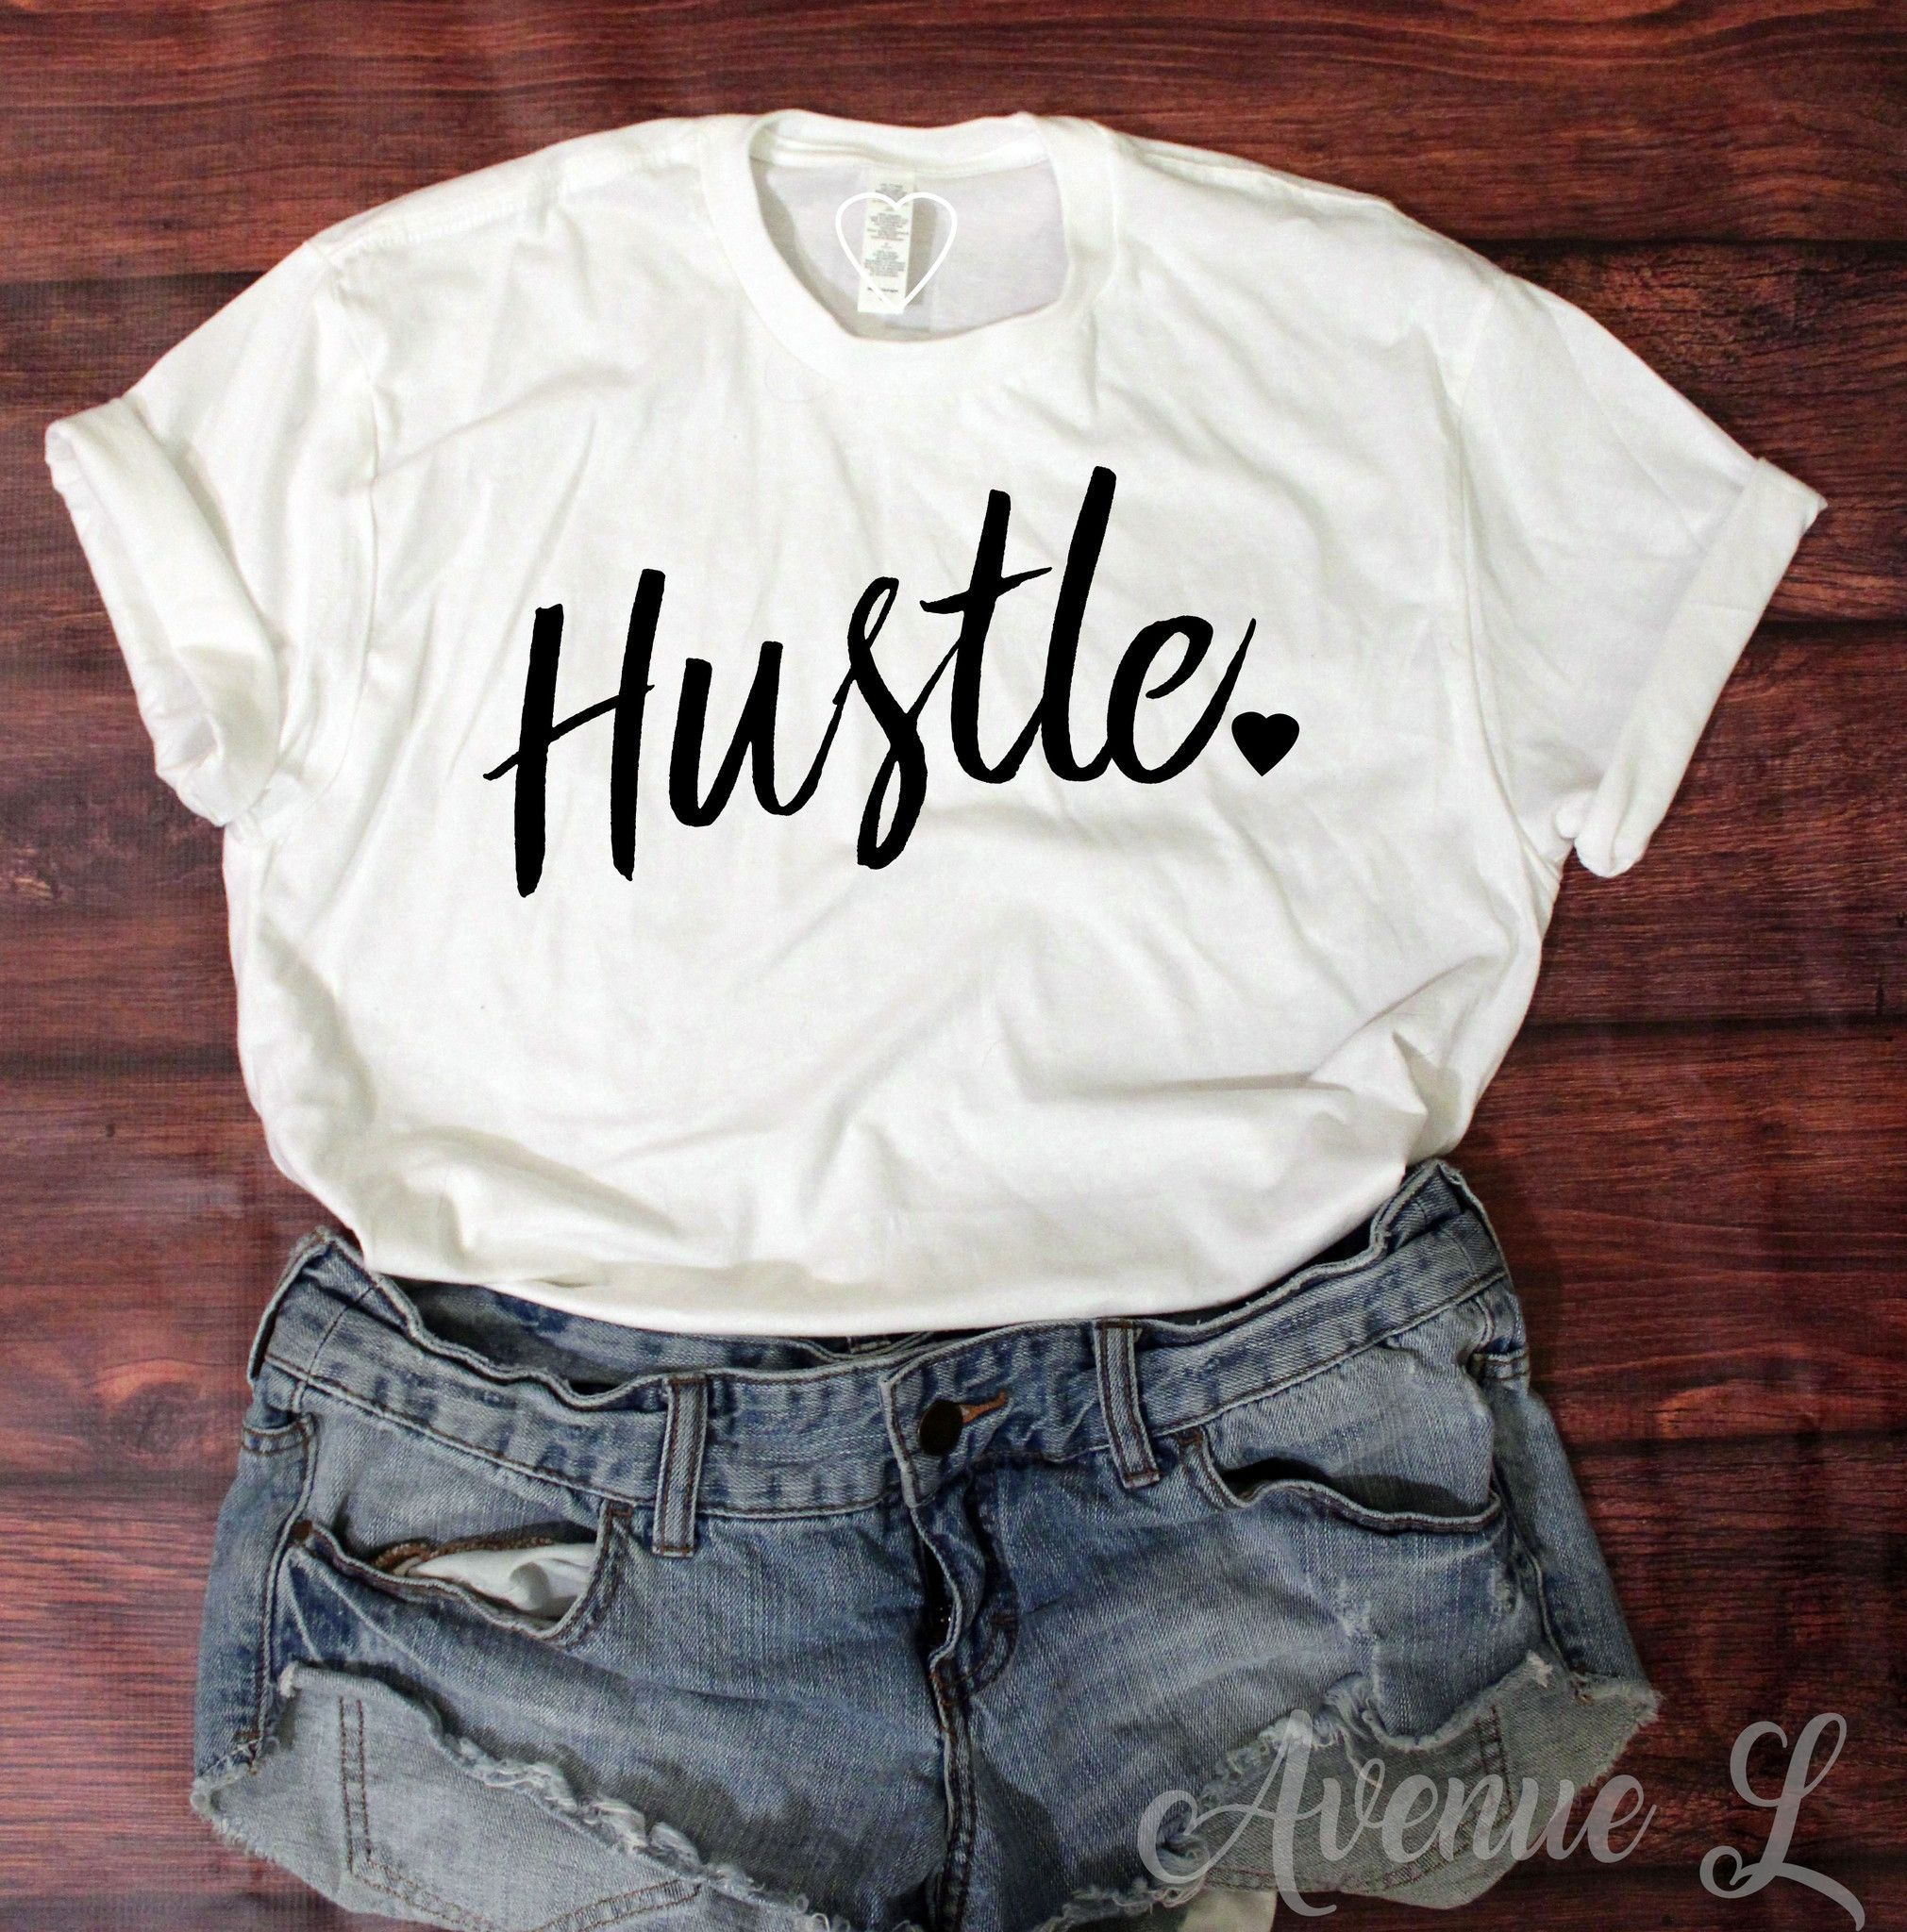 Hustle tee graphic tee outfits graphic tees vintage